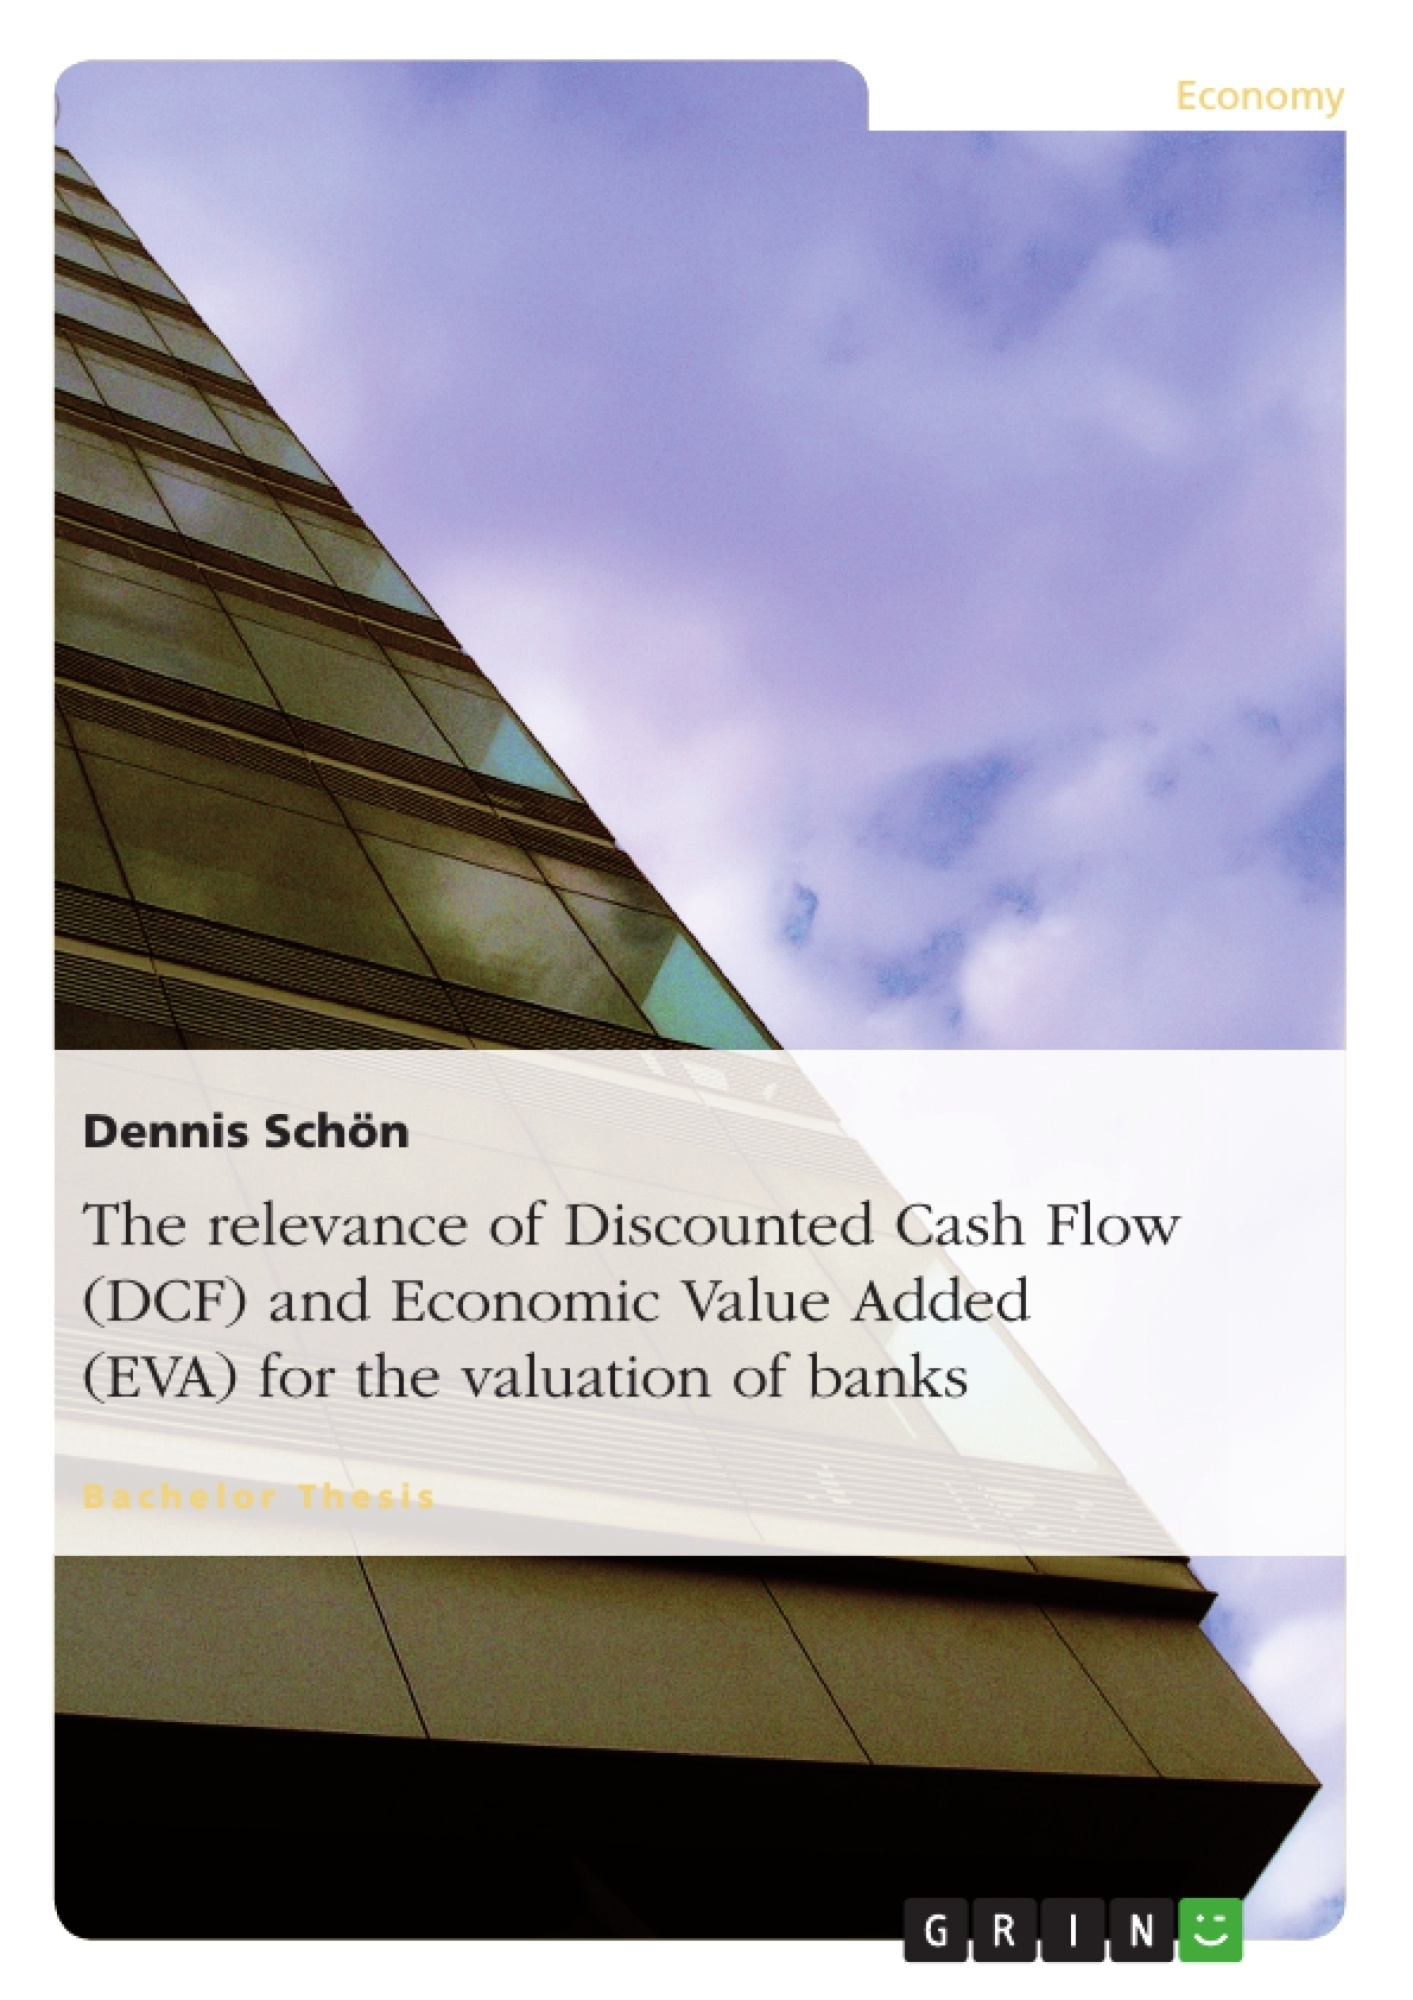 Title: The relevance of Discounted Cash Flow (DCF) and Economic Value Added (EVA) for the valuation of banks